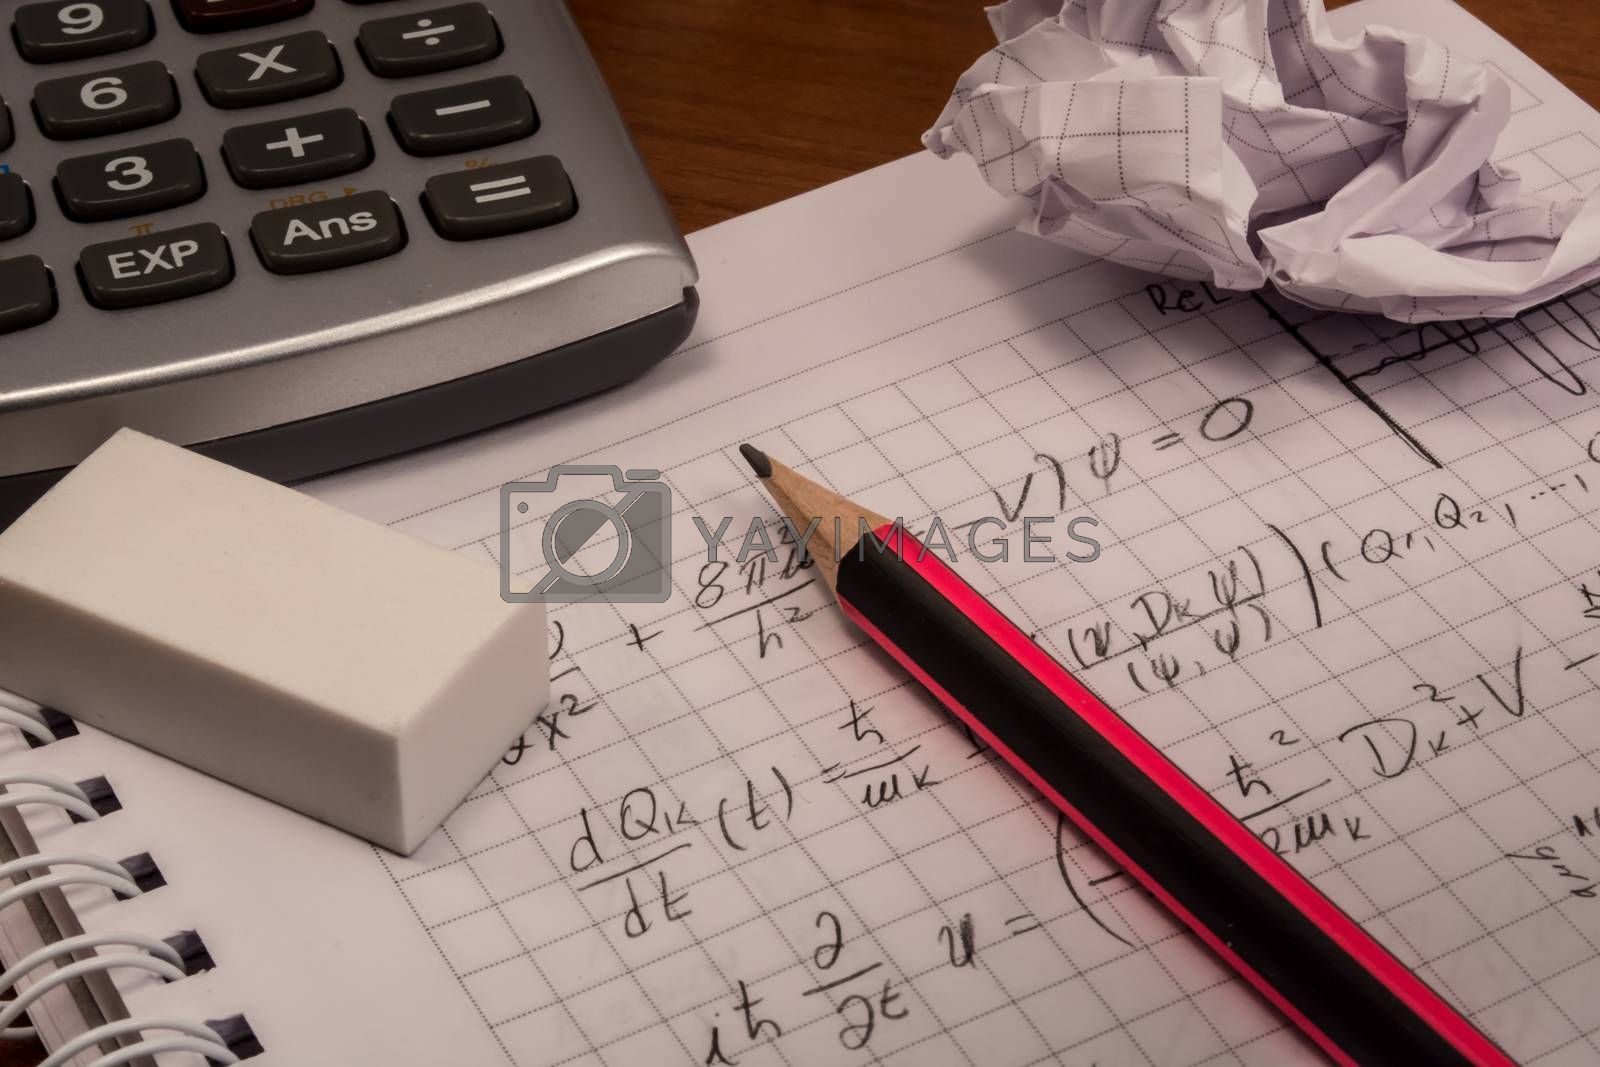 Messy table with notebook, pencils, crumpled papers and calculator